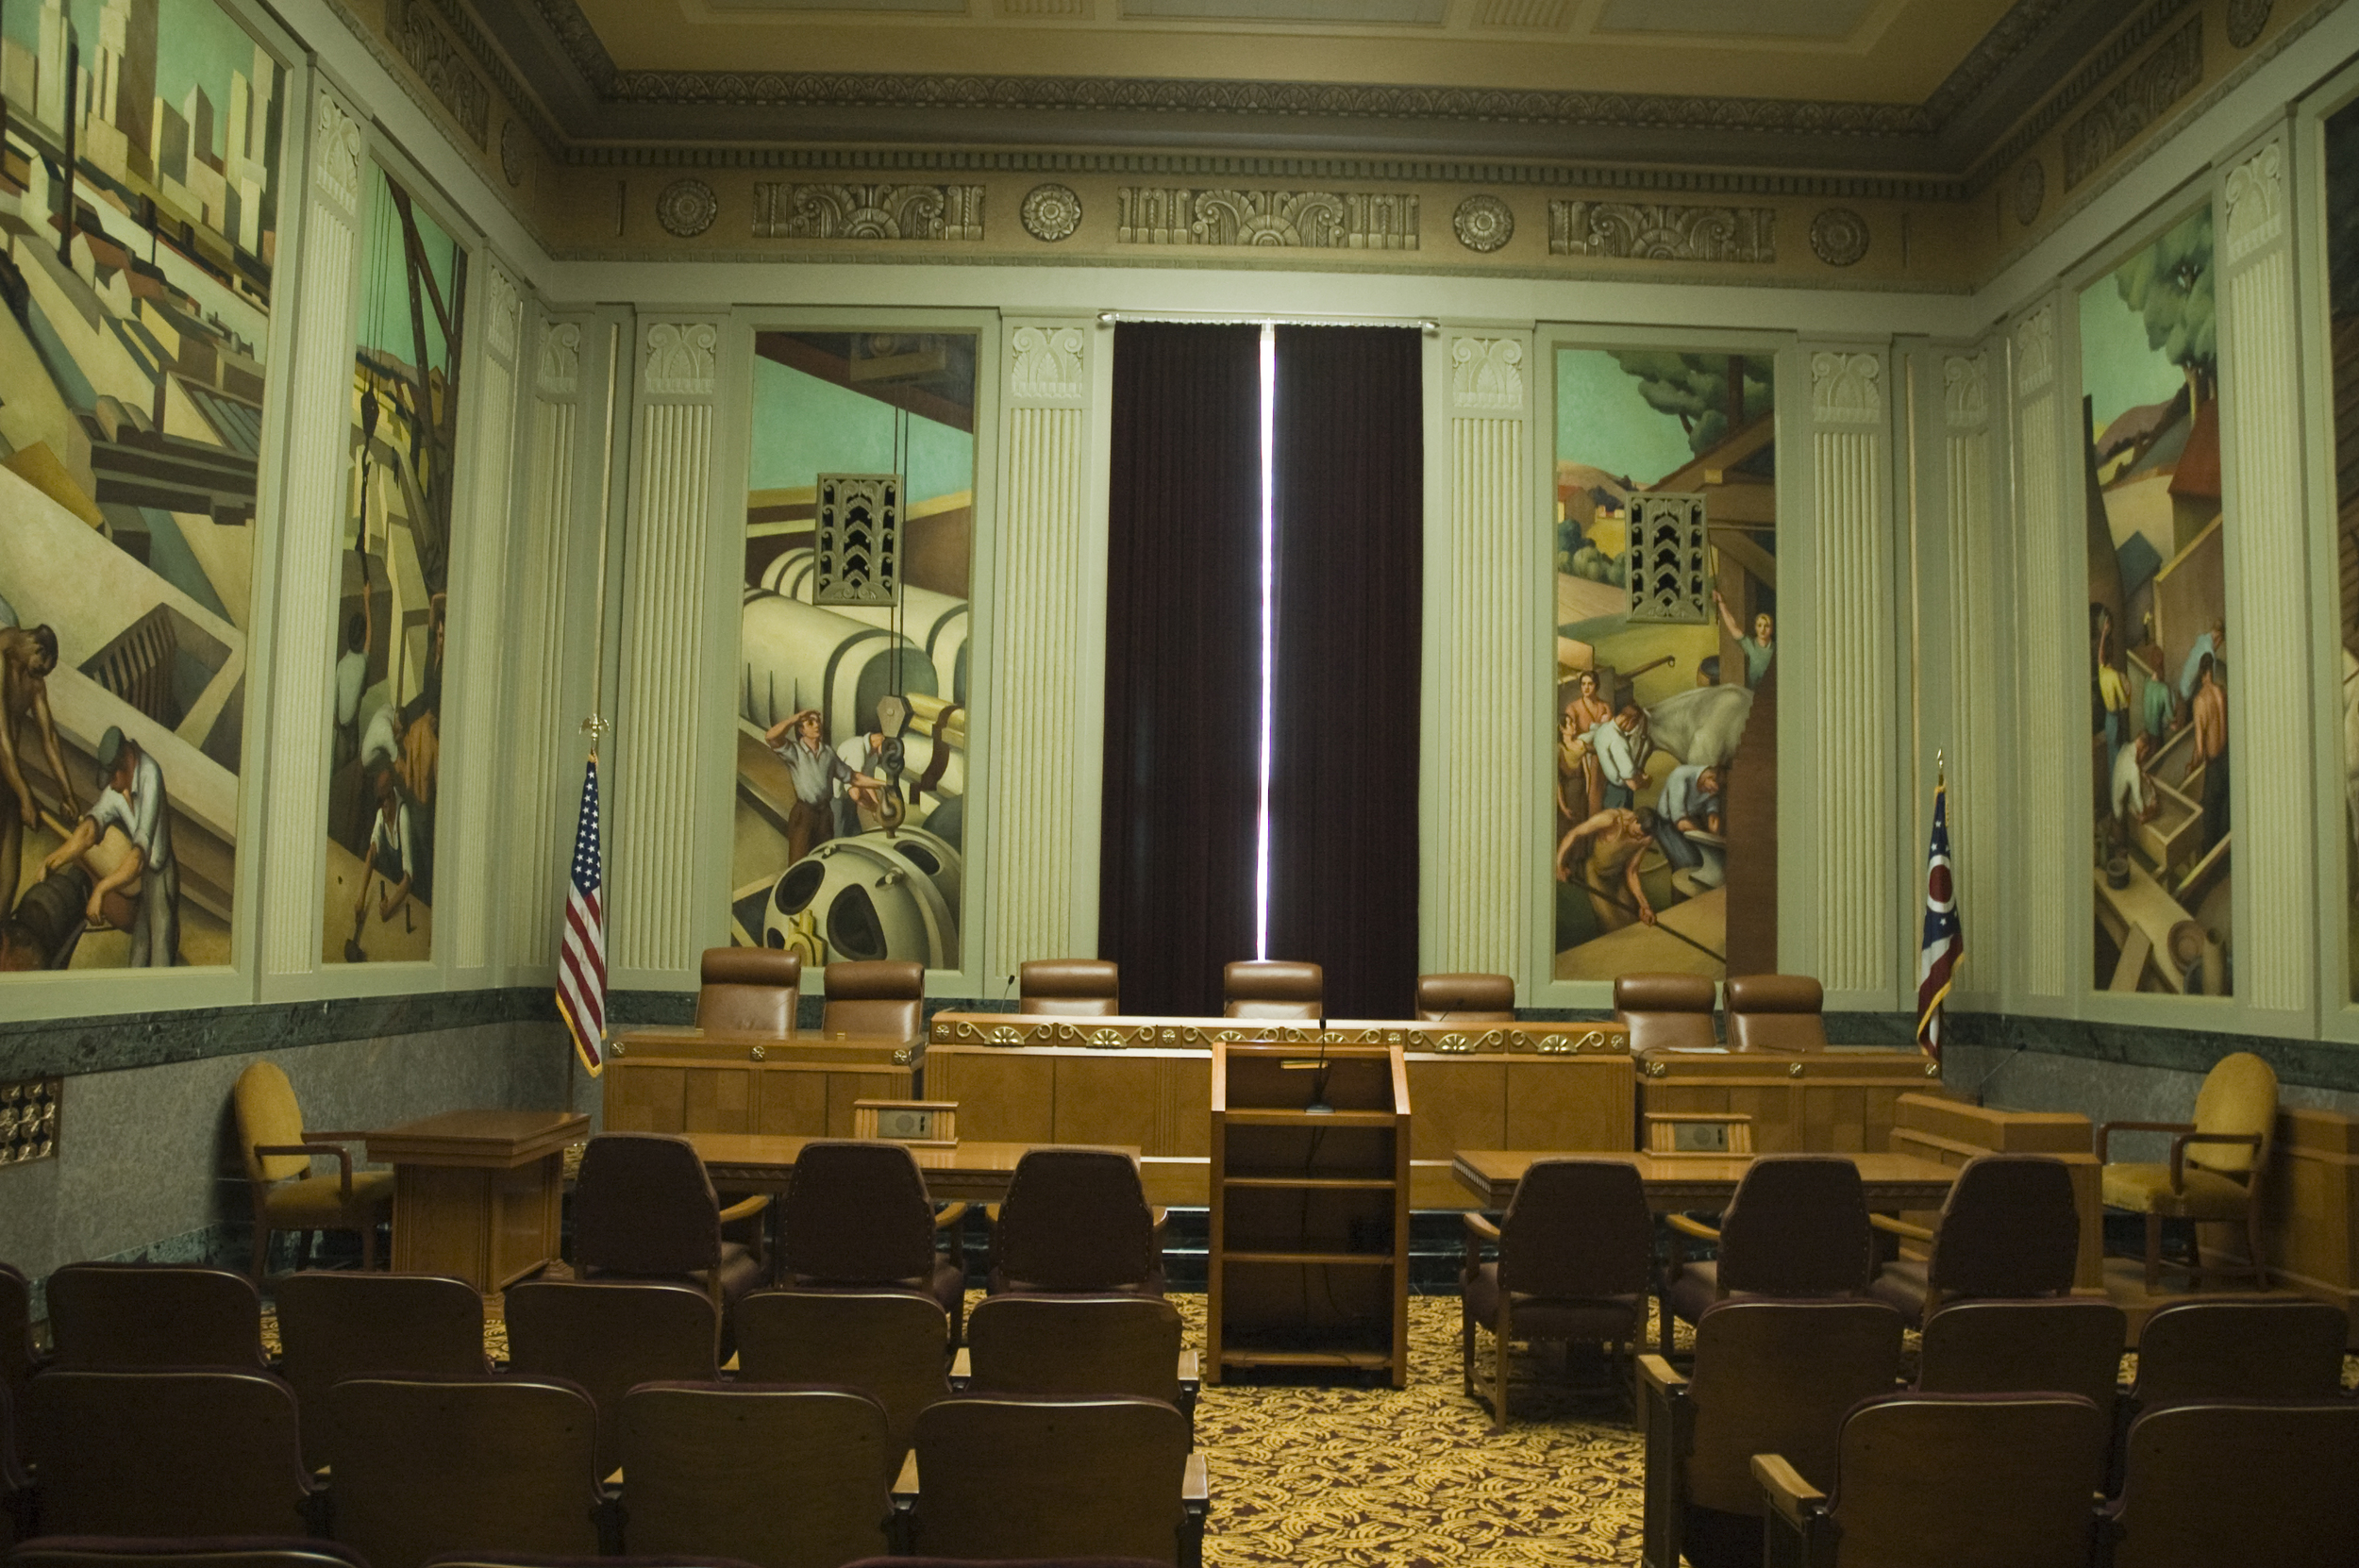 Our Supreme Court building is more stylish than yours